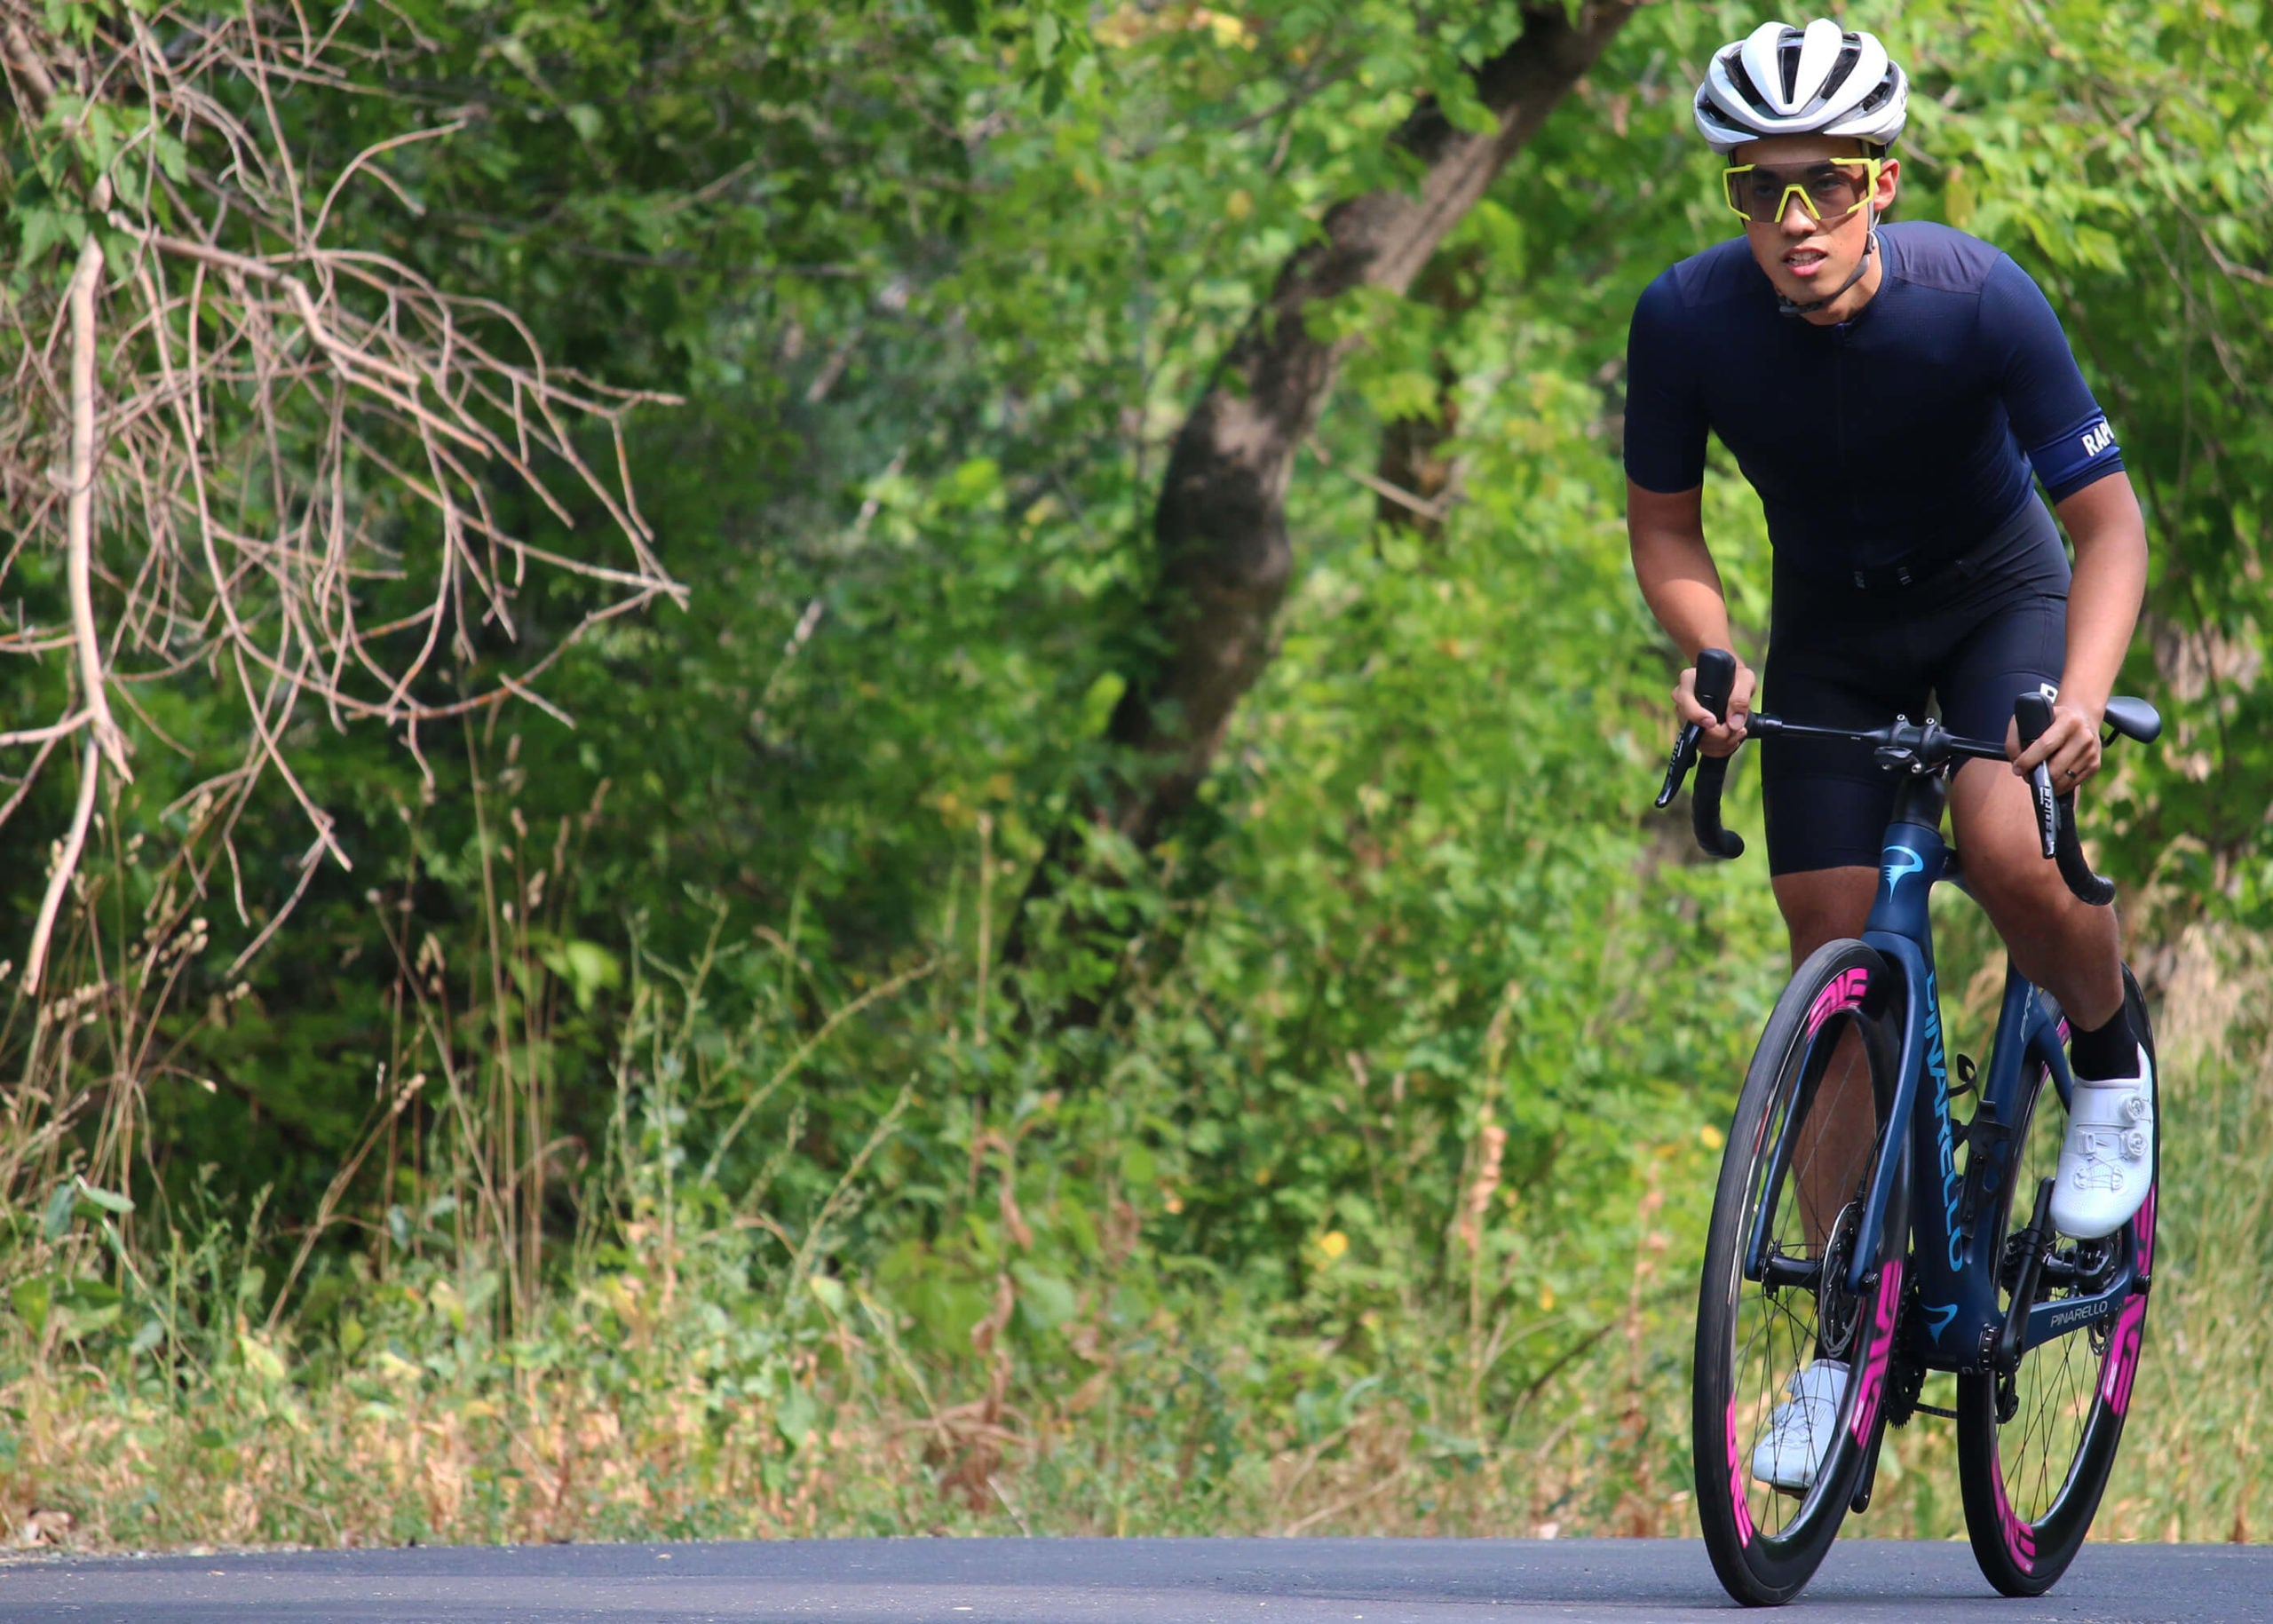 Rapha Pro Flyweight Jersey Riding - Contender Bicycles